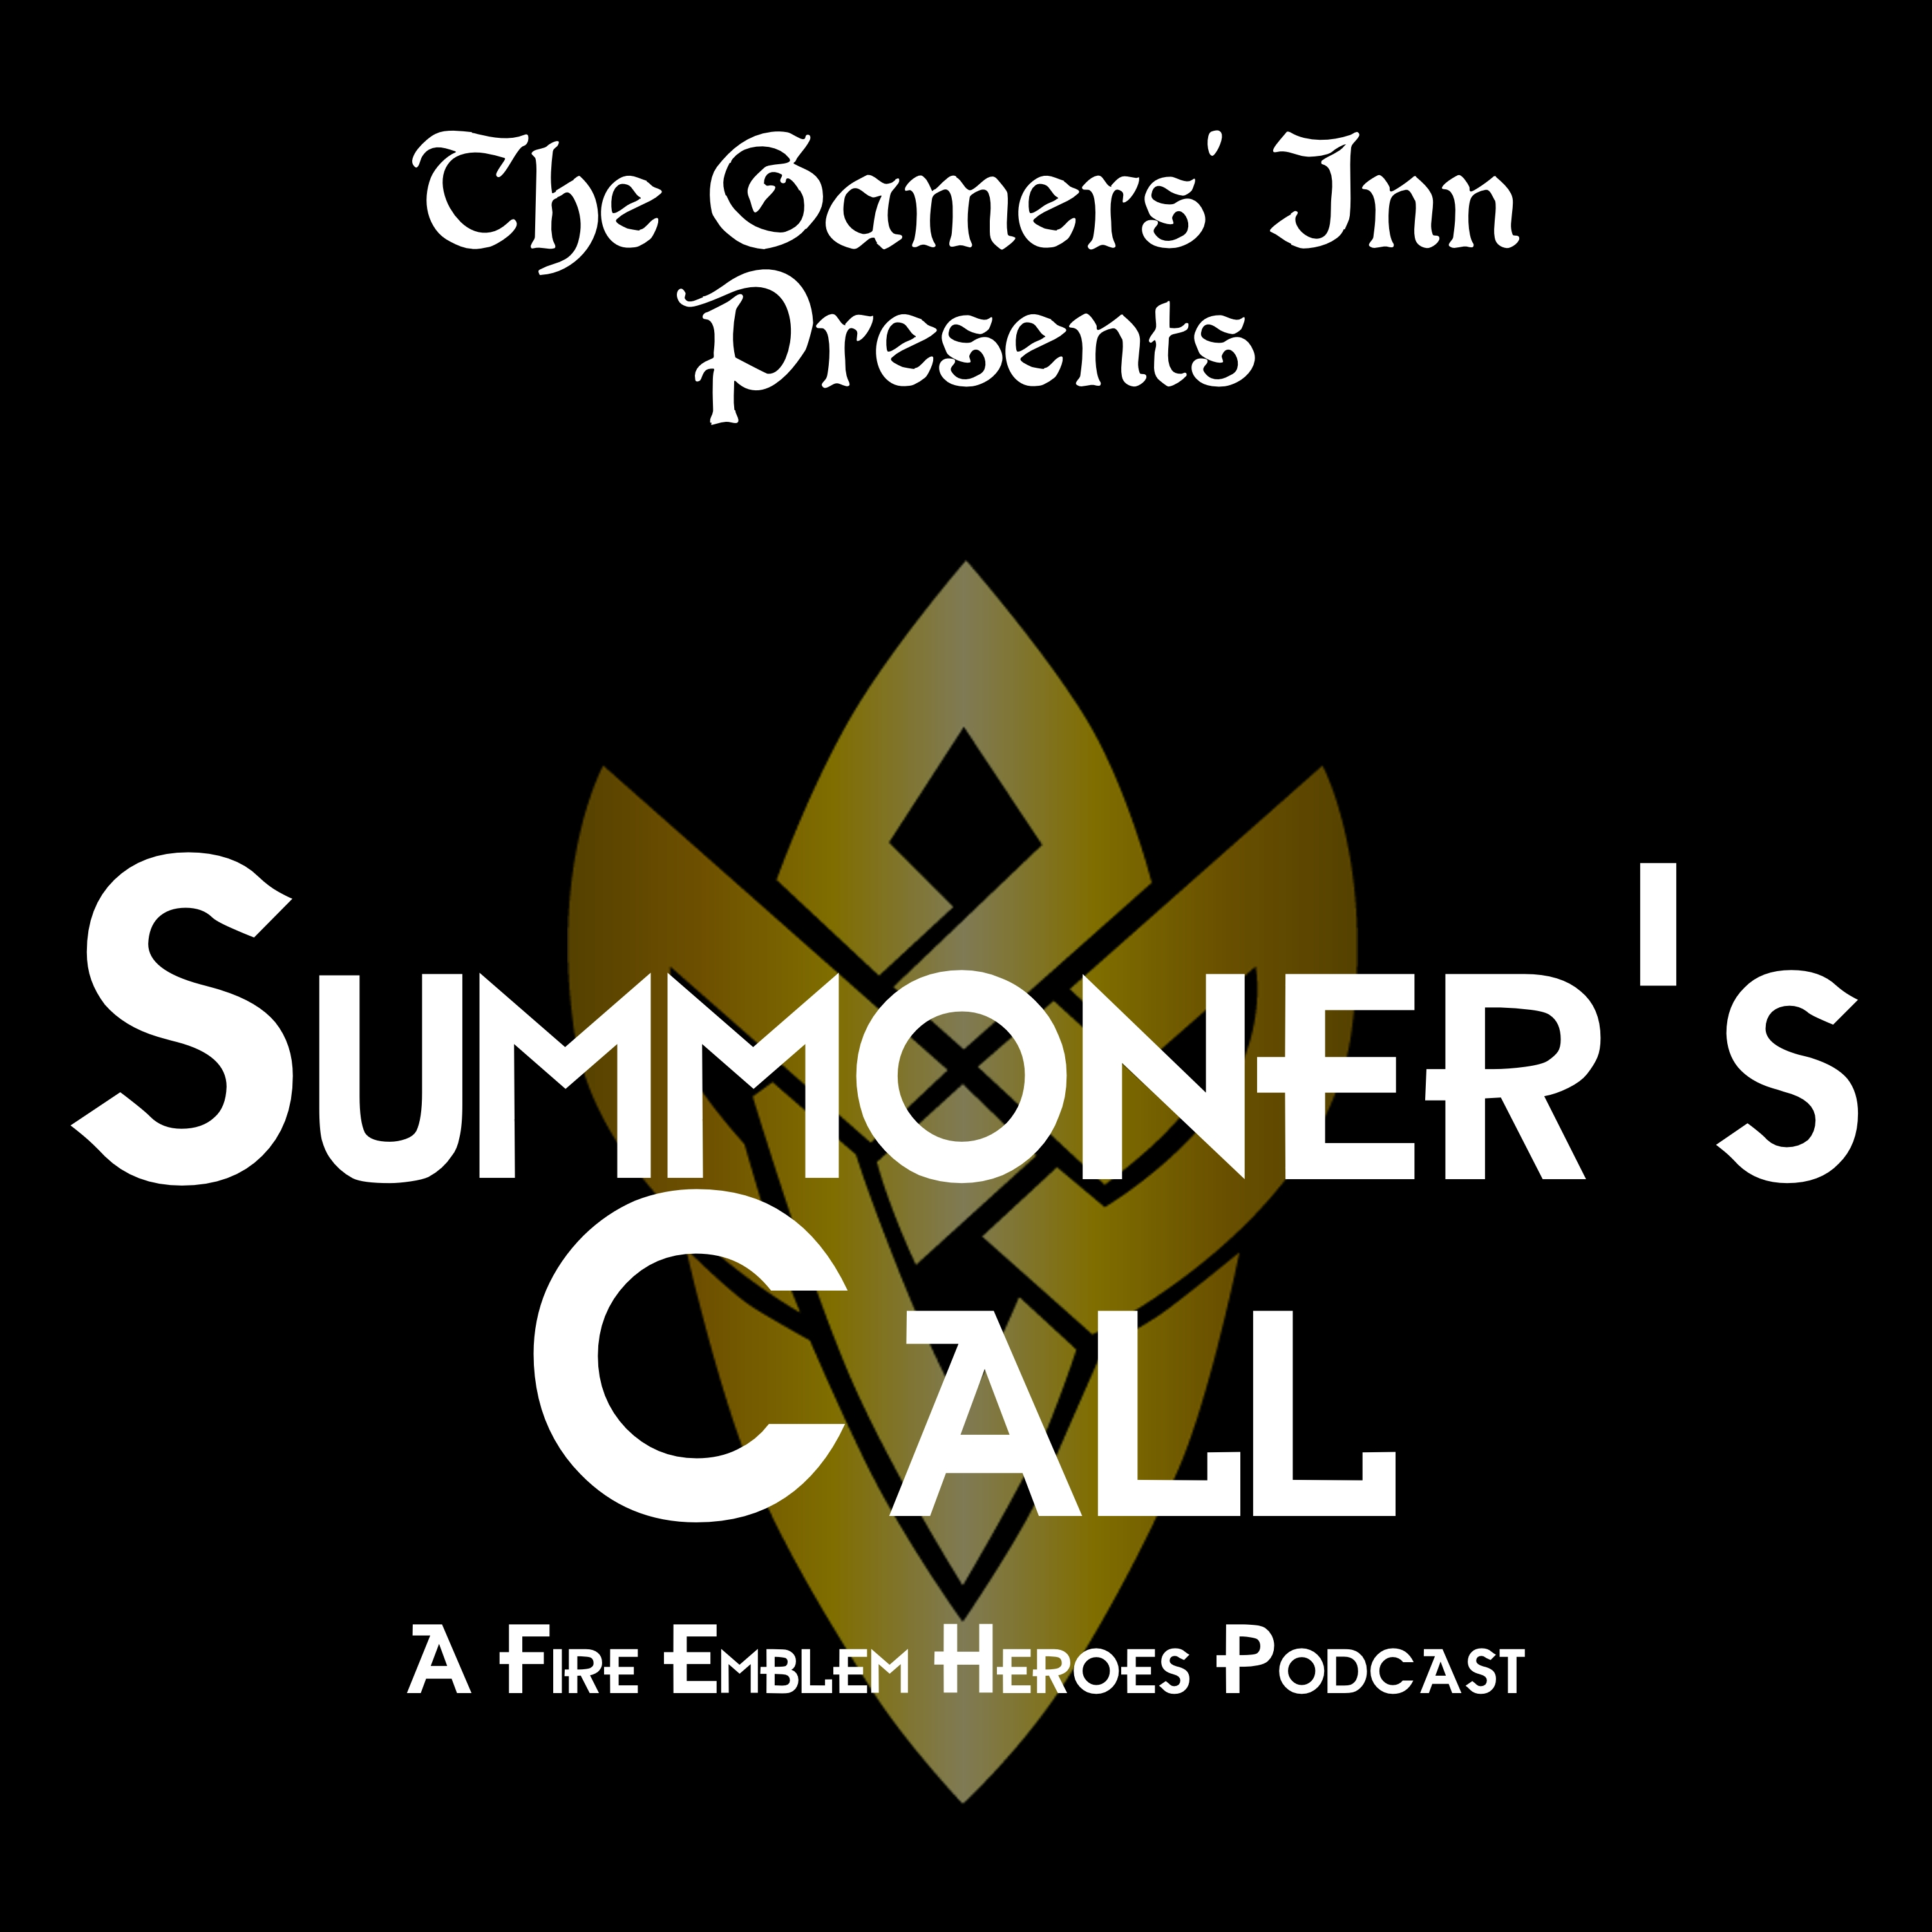 The Gamers' Inn Presents Summoner's Call: A Fire Emblem Heroes Podcast